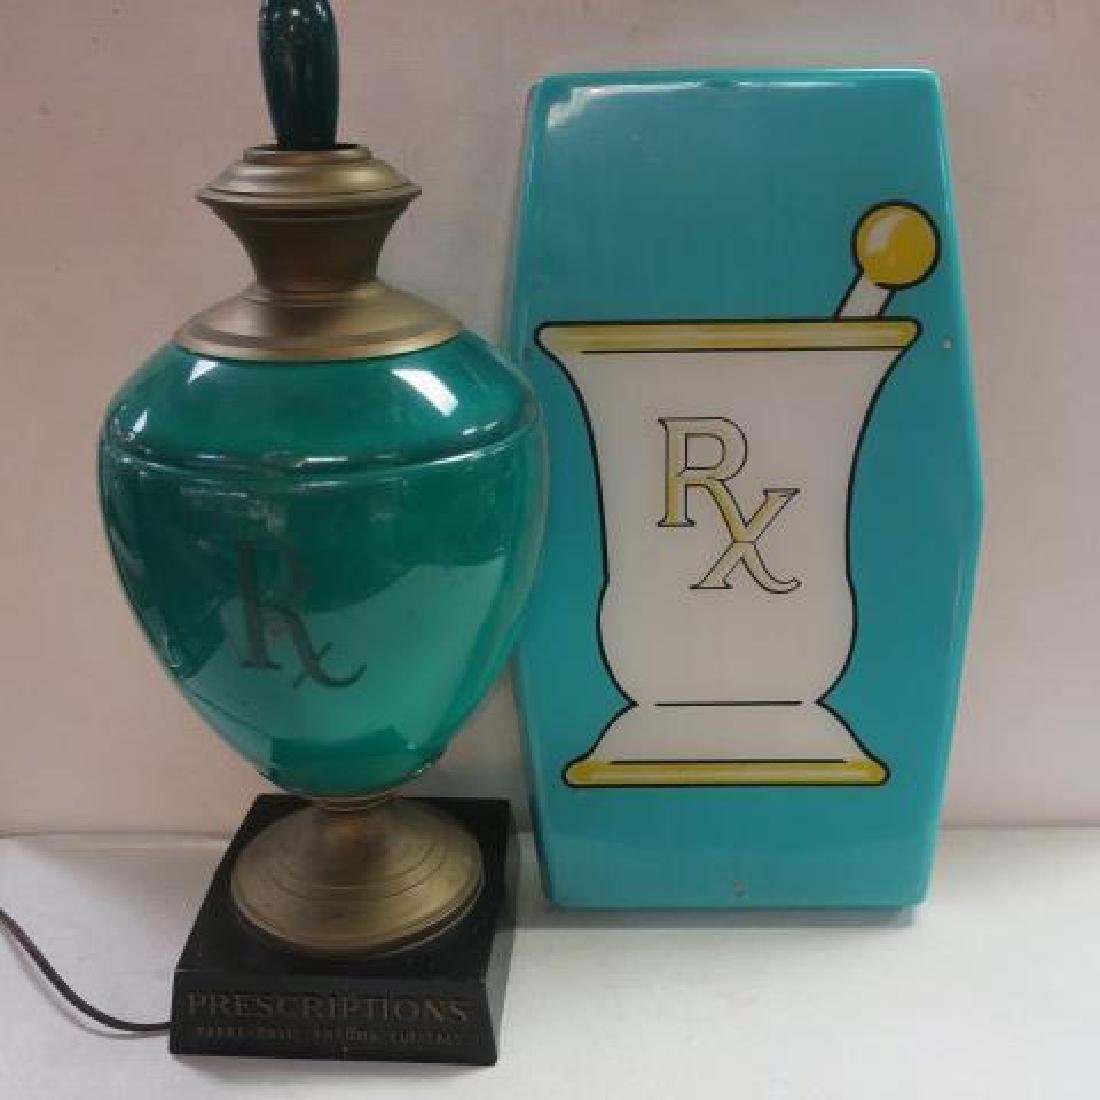 Traditional Green Pharmacy Display Items; Lamp & Sign: